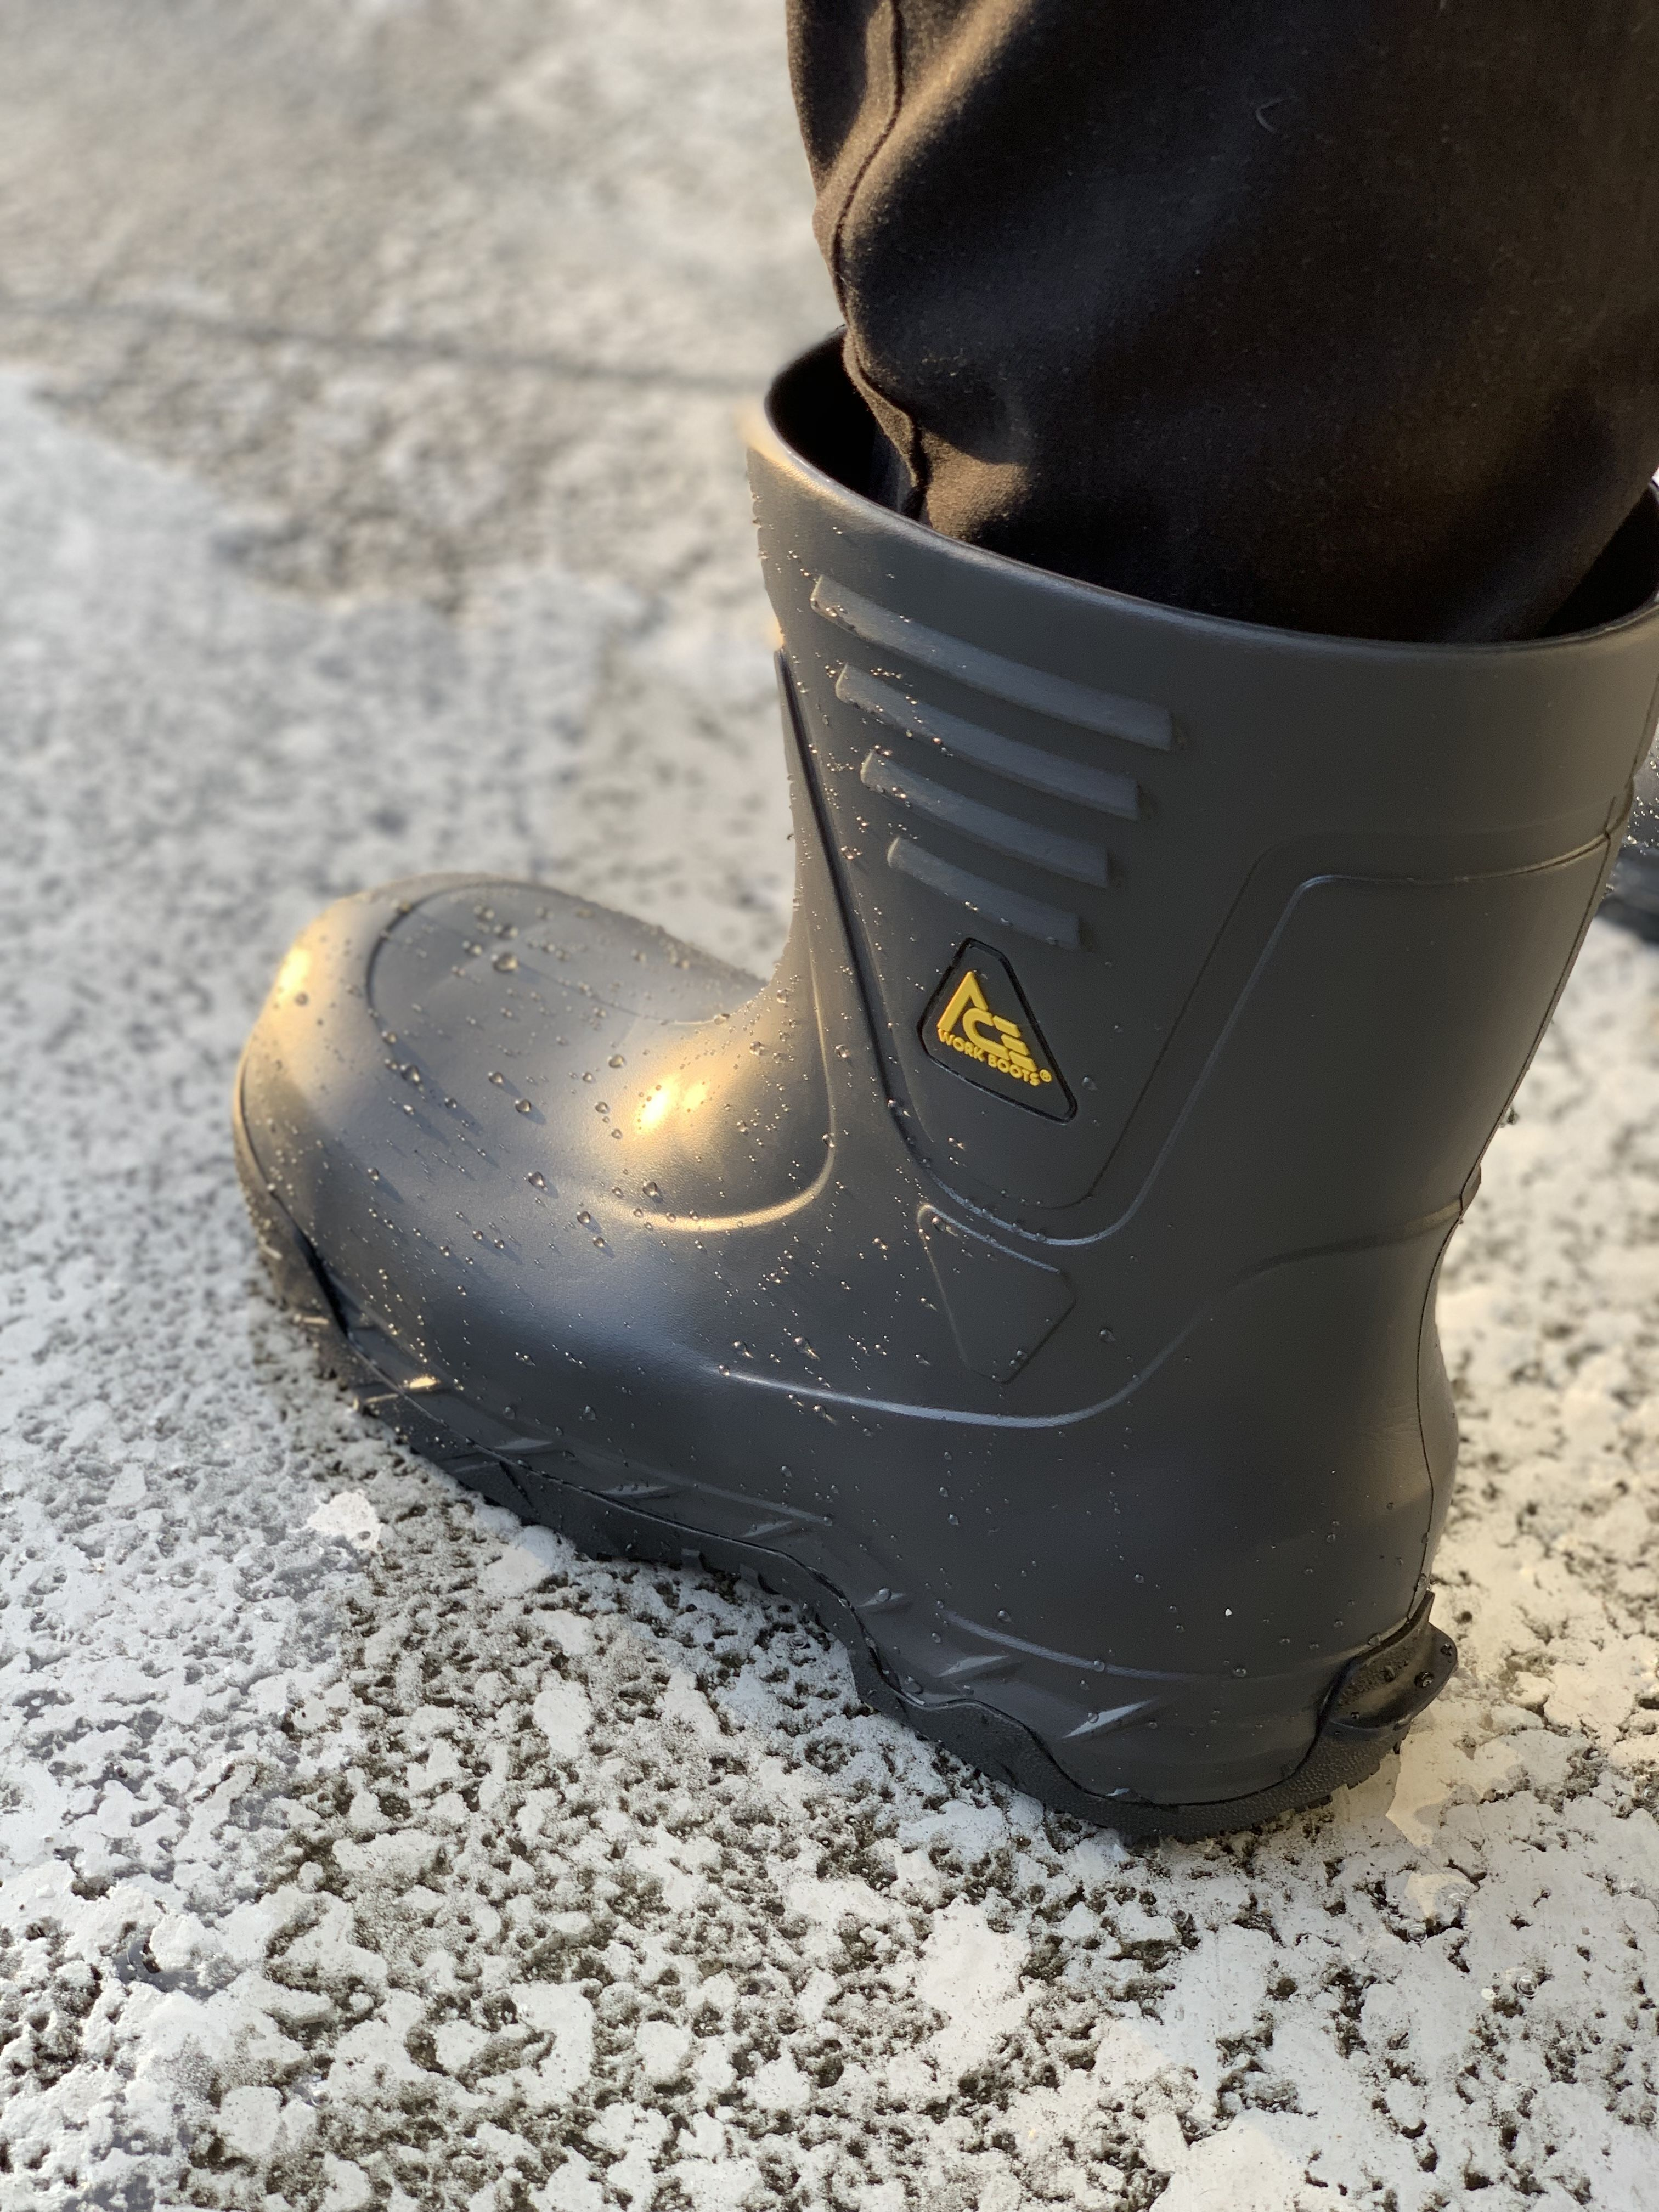 "75832a9f62f4 The Bullfrog Pro II will let you handle any tough job with ease. This 10""  slip-resistant soft toe work boot is water-resistant and has a gel insole  for the ..."